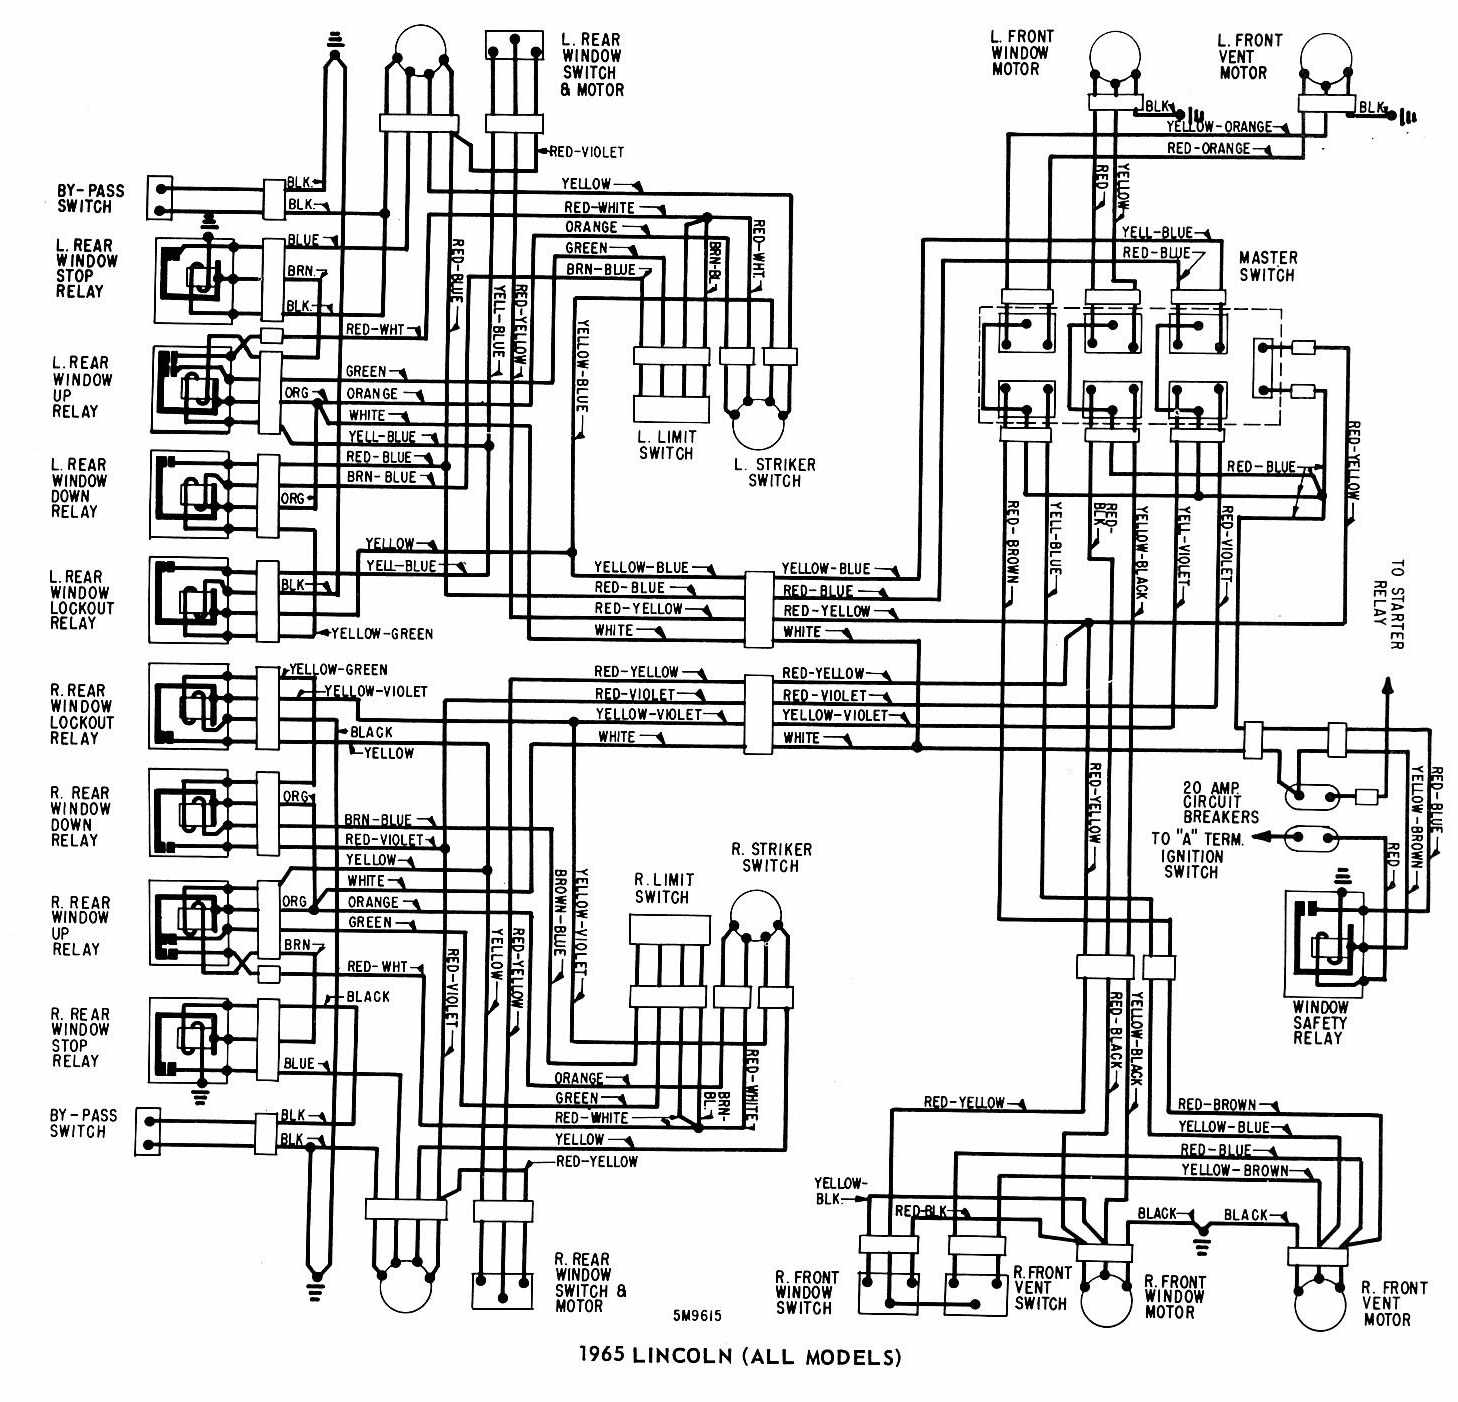 Basic Car Parts Diagram Diagrams Engine additionally Discussion T20449 ds551854 further Detroit 60 Series Engine Cooling System moreover 04 International 4300 Wiring Diagram as well Lincoln All Models 1965 Windows Wiring. on freightliner truck wiring diagrams